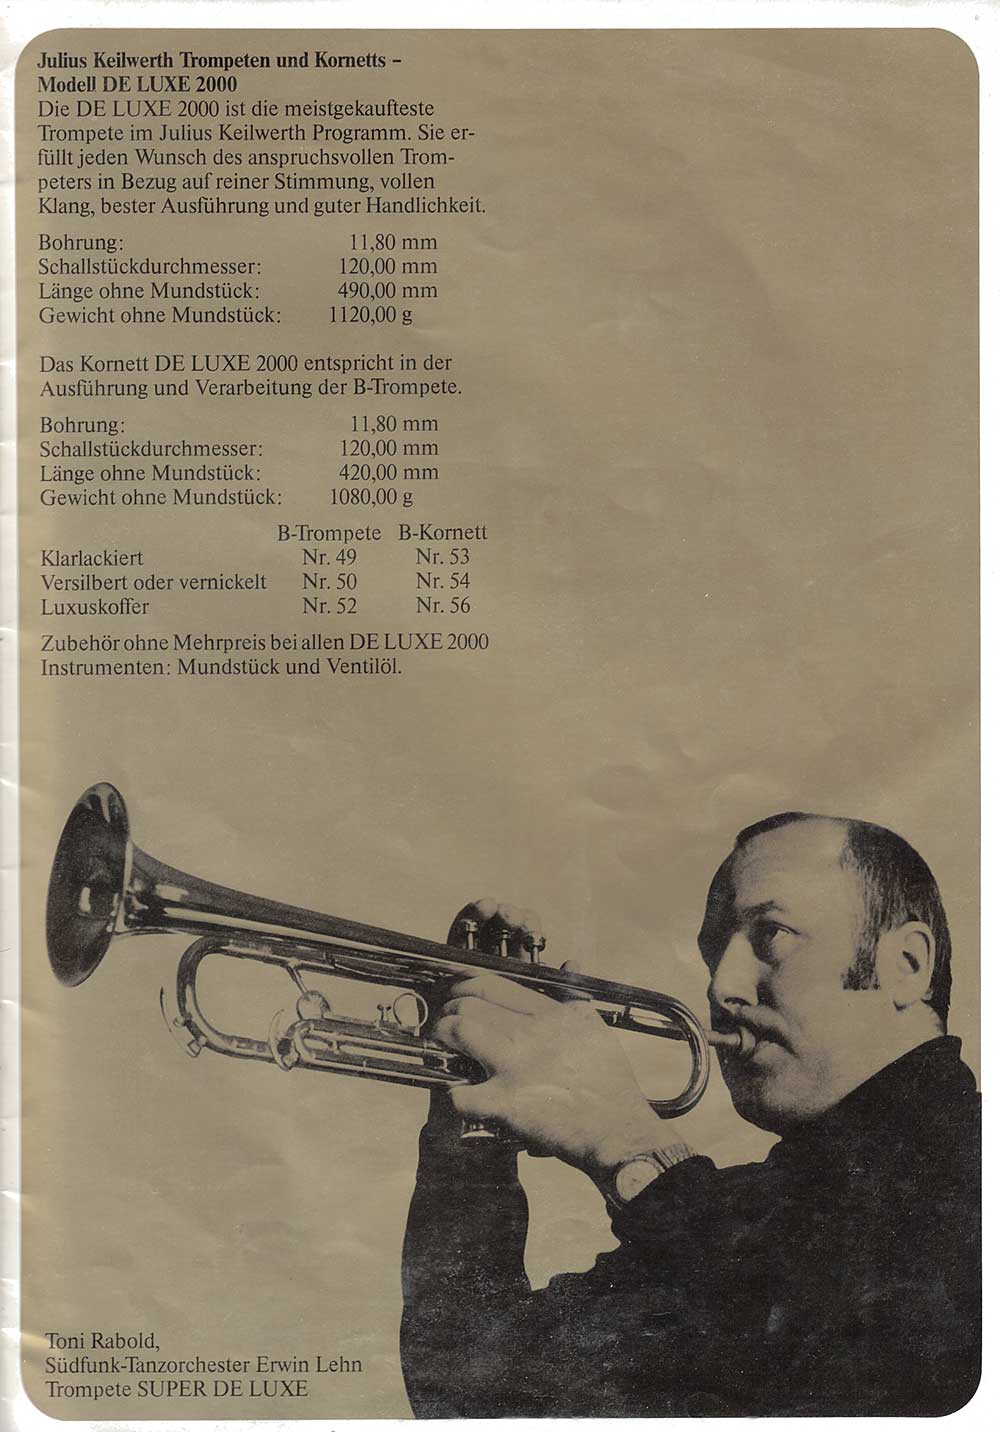 Julius Keilwerth, vintage, catalogue, 1979, page 16, trumpet, trumpet player, black, gold